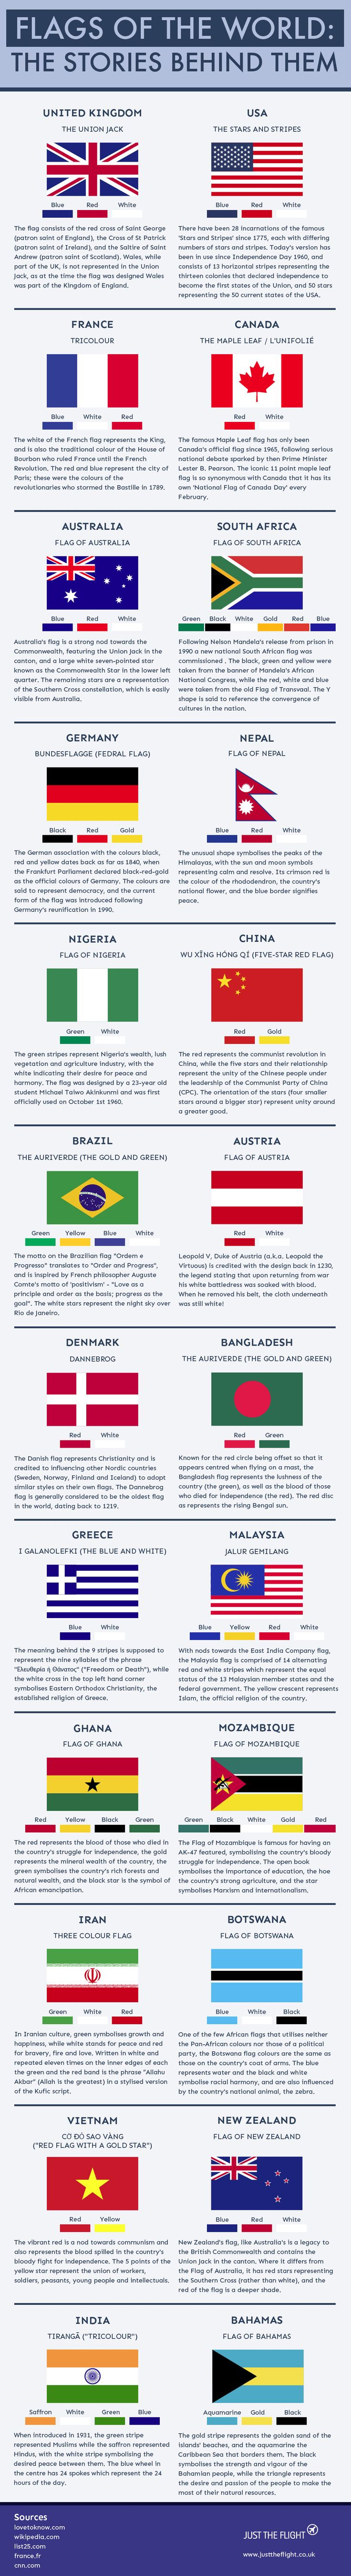 Flags Of The World & The Stories Behind Them